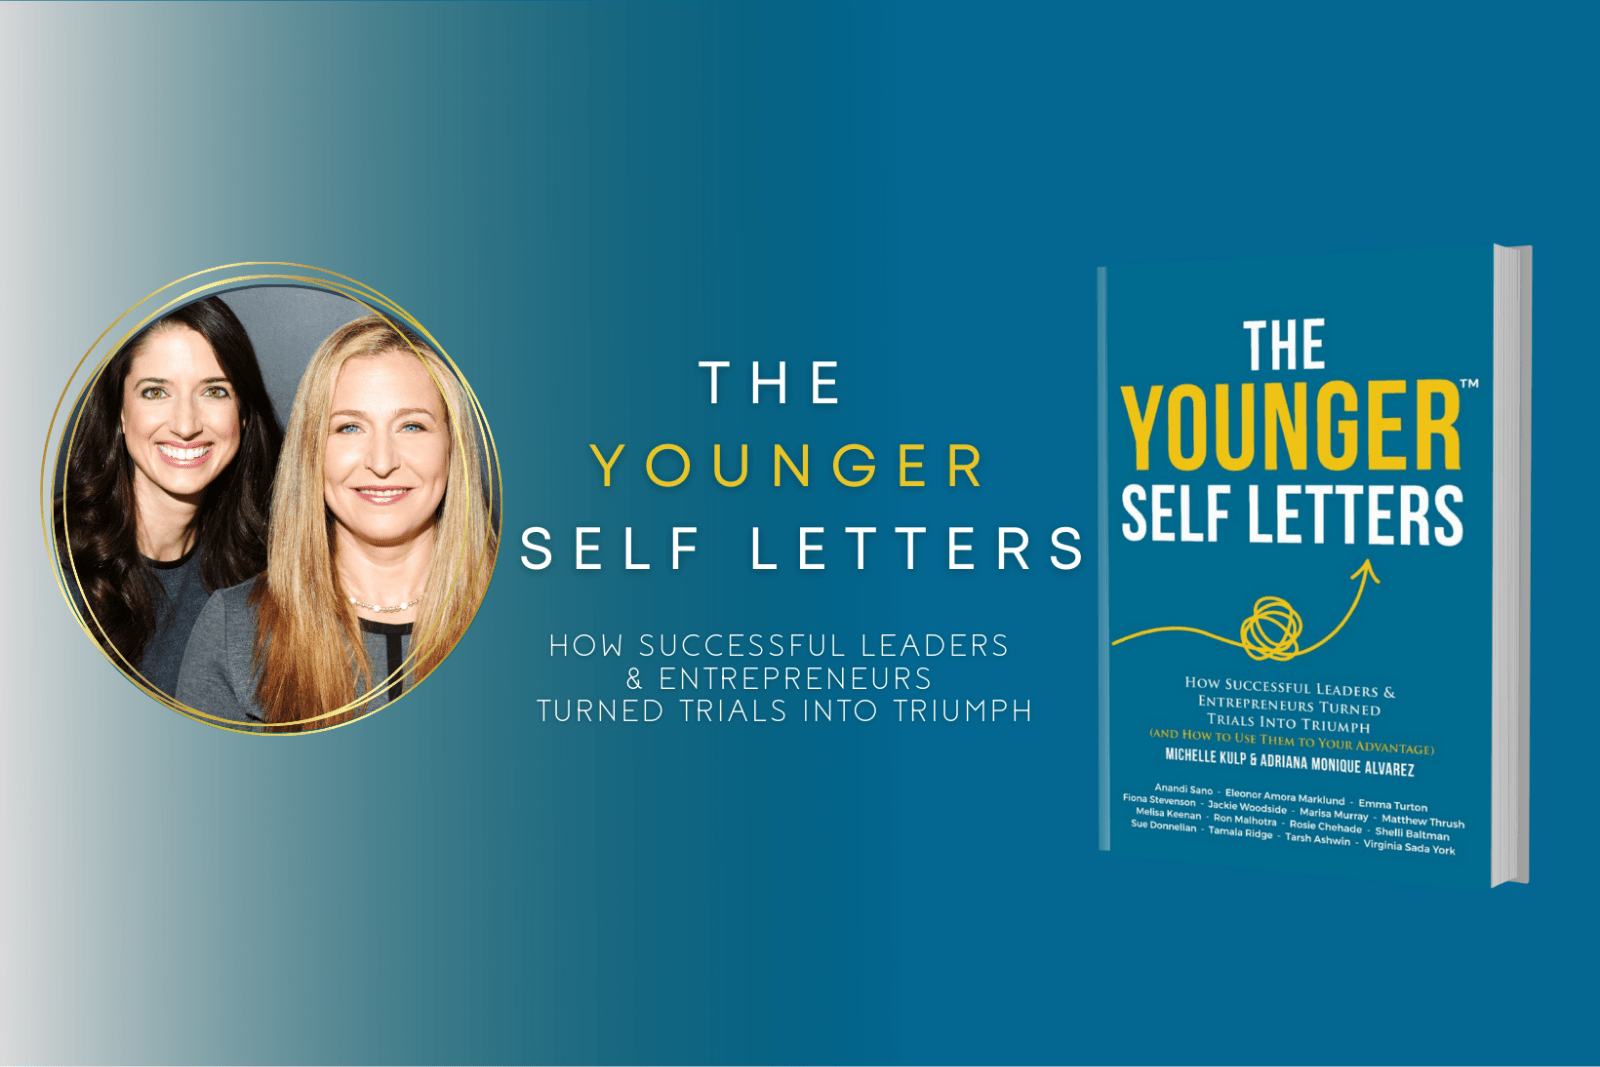 Book The Younger Self Letters Amazon #1 Best Seller